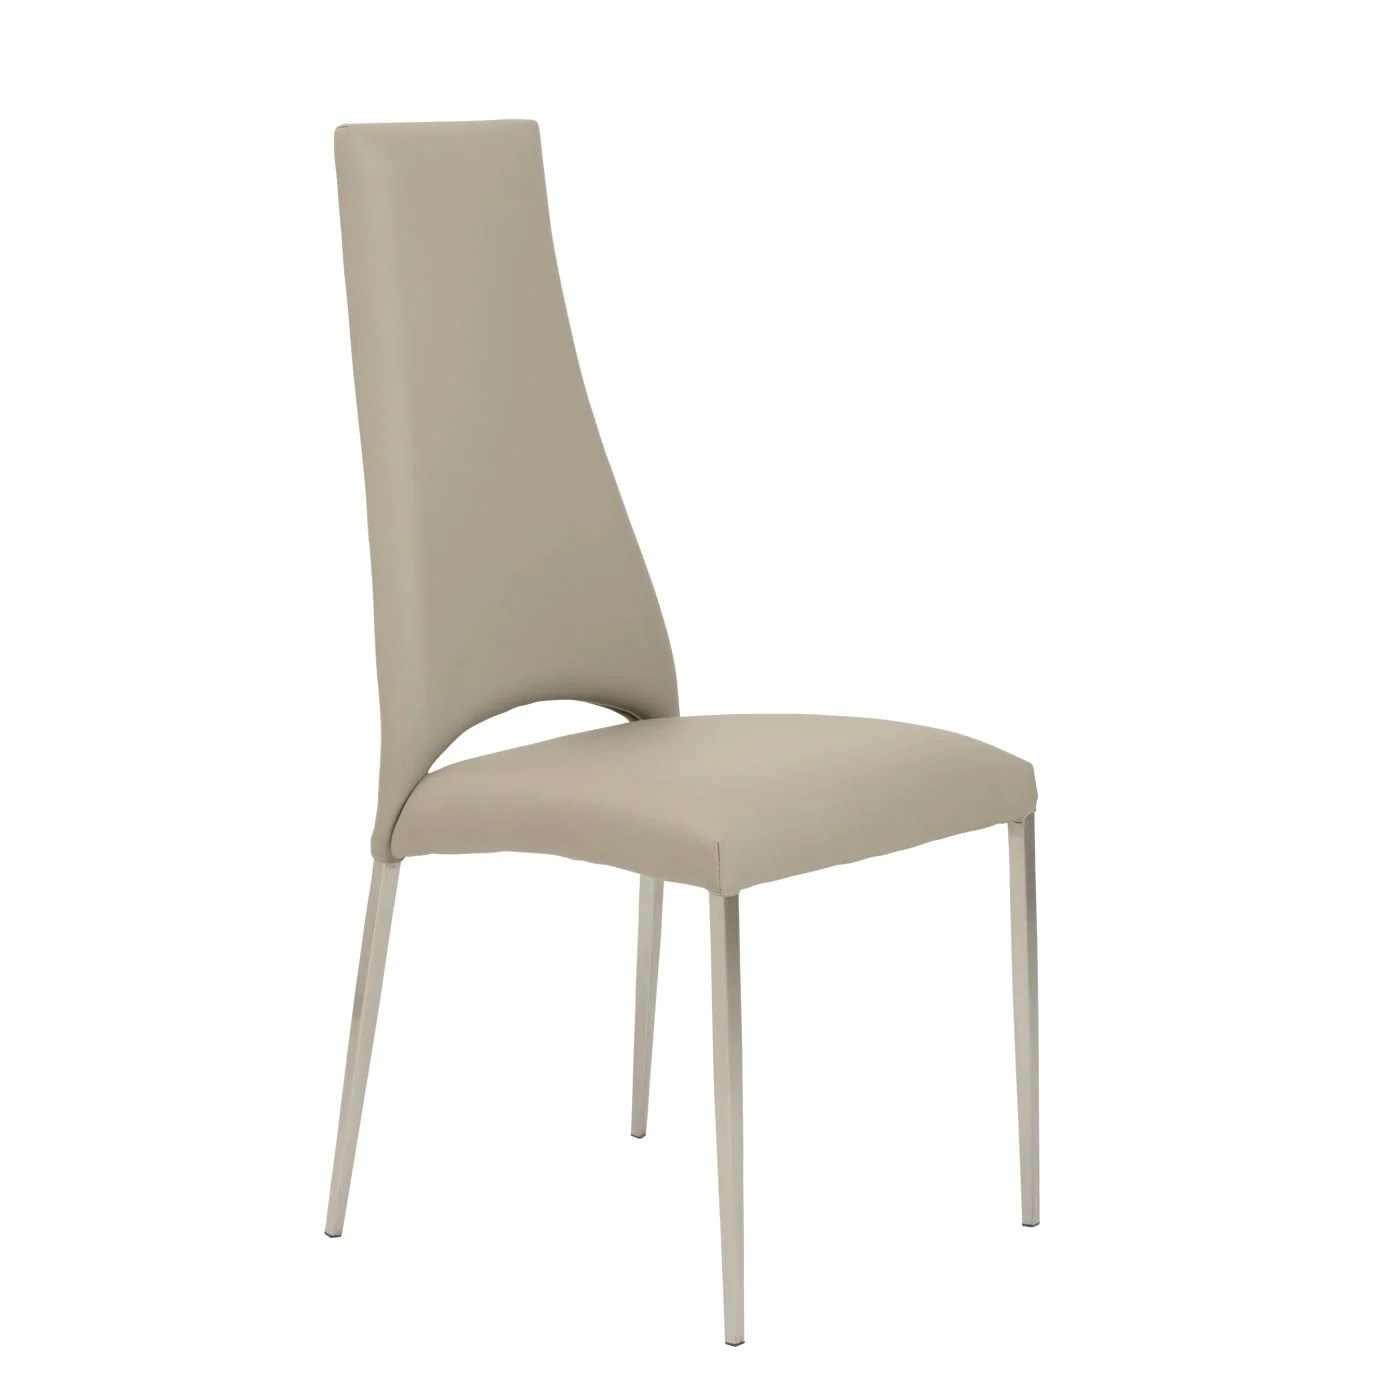 dining chairs with stainless steel legs round corner chair amazing deal on euro style 80982tpe tara